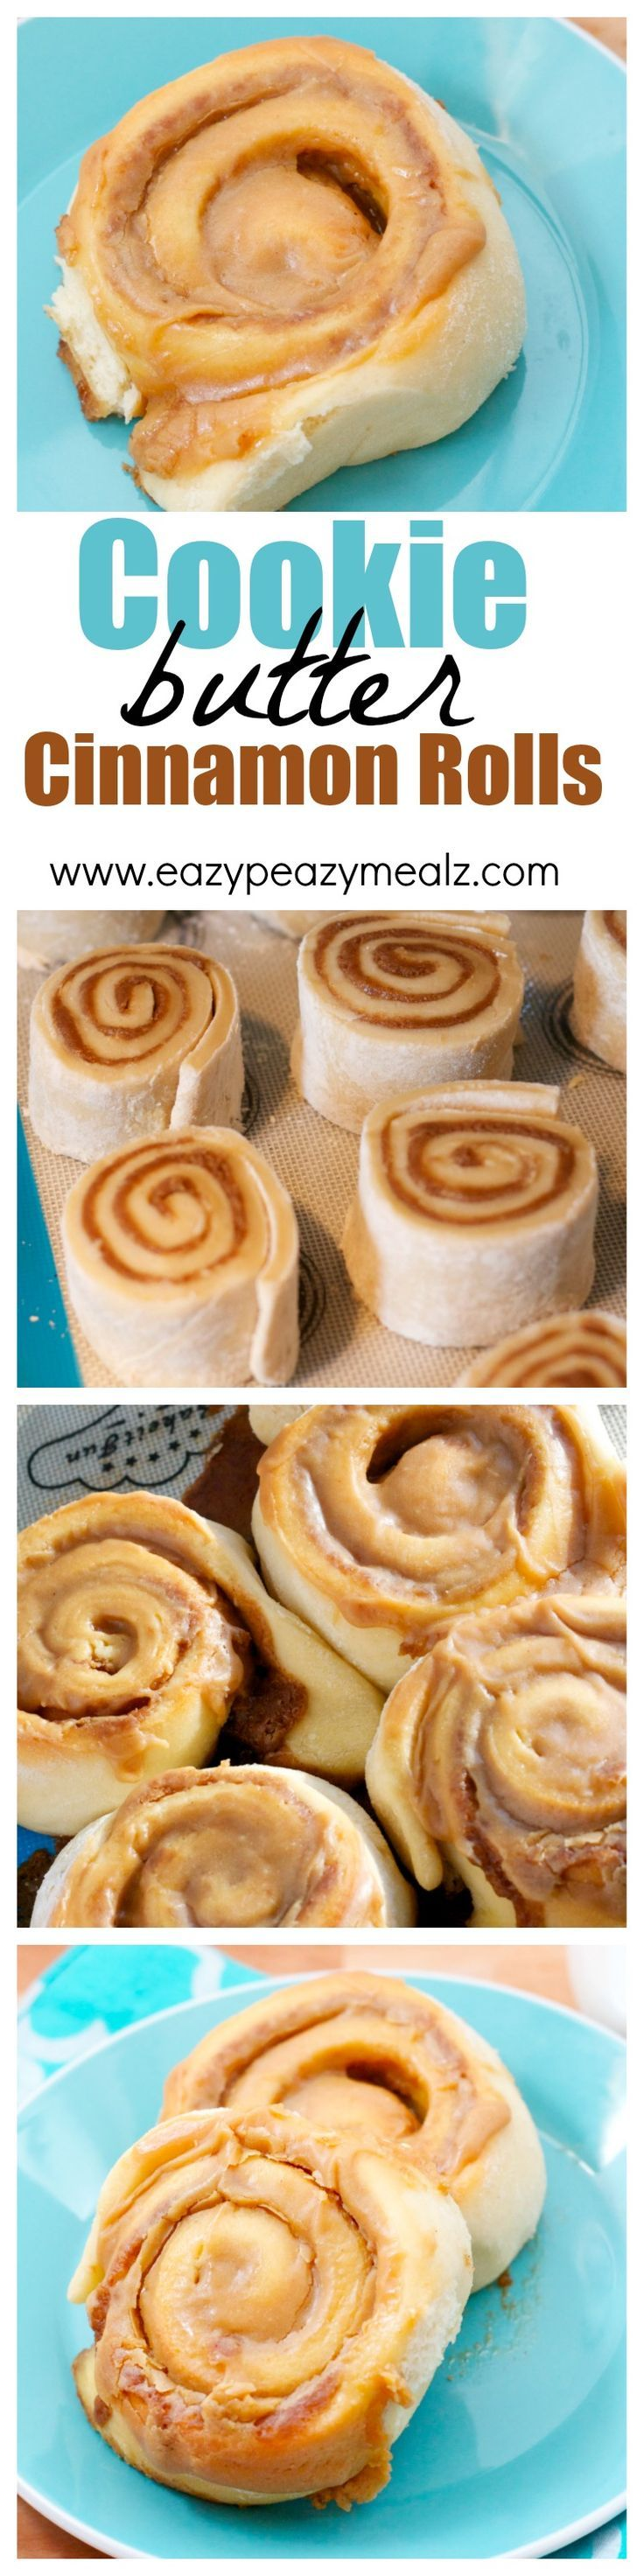 A classic light and fluffy cinnamon roll with a cookie butter filling and cookie butter frosting. It is almost too good. #ad -Eazy Peazy Mealz